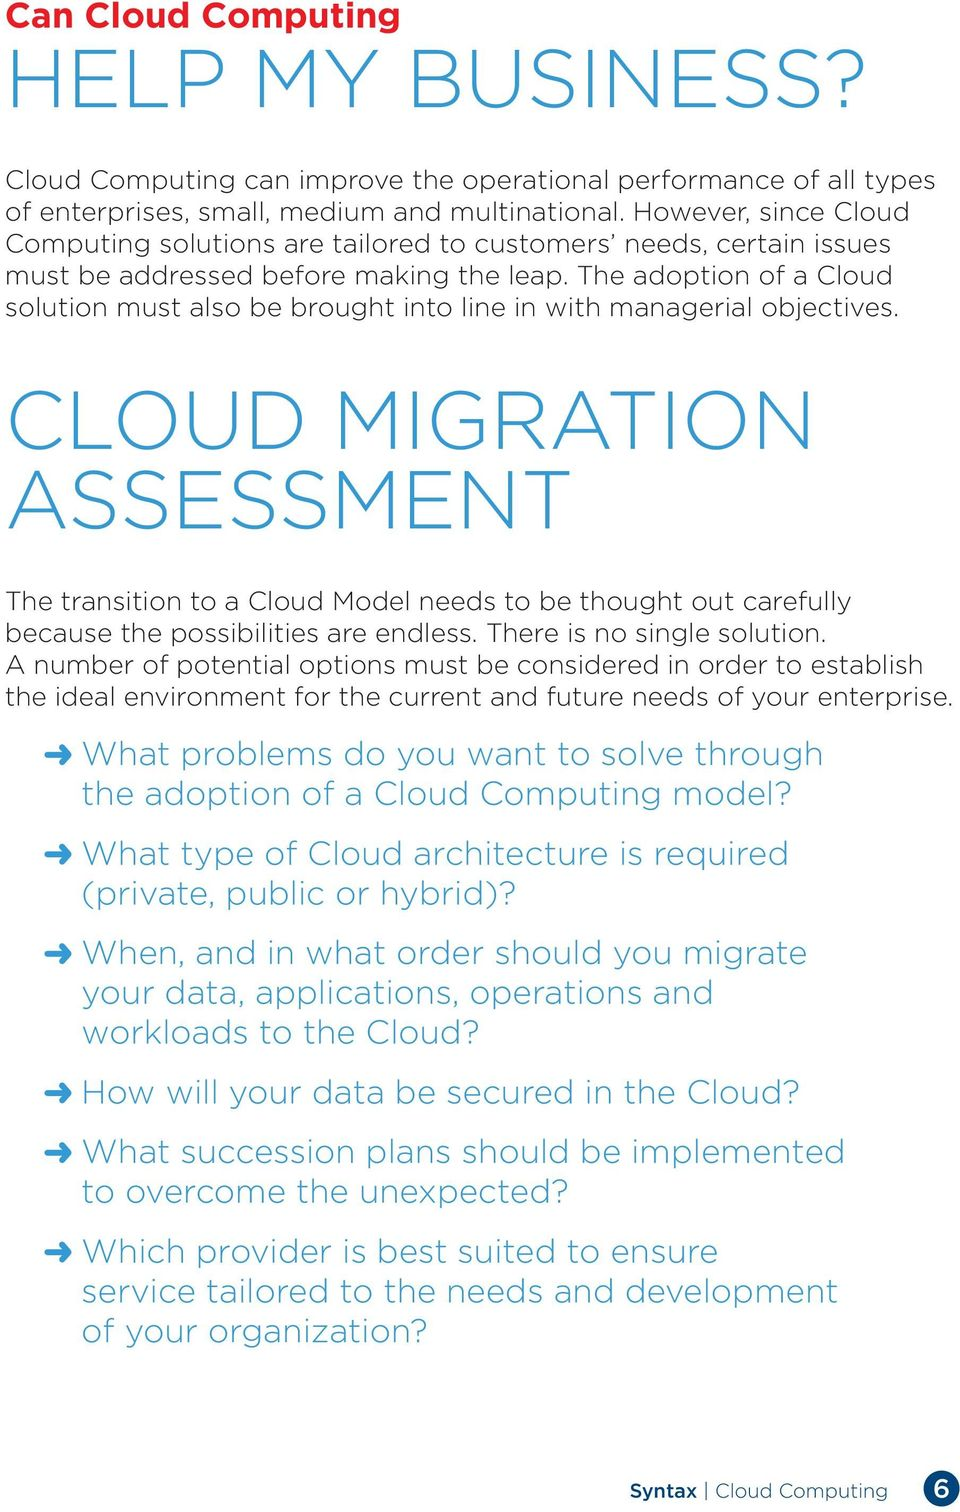 The adoption of a Cloud solution must also be brought into line in with managerial objectives.